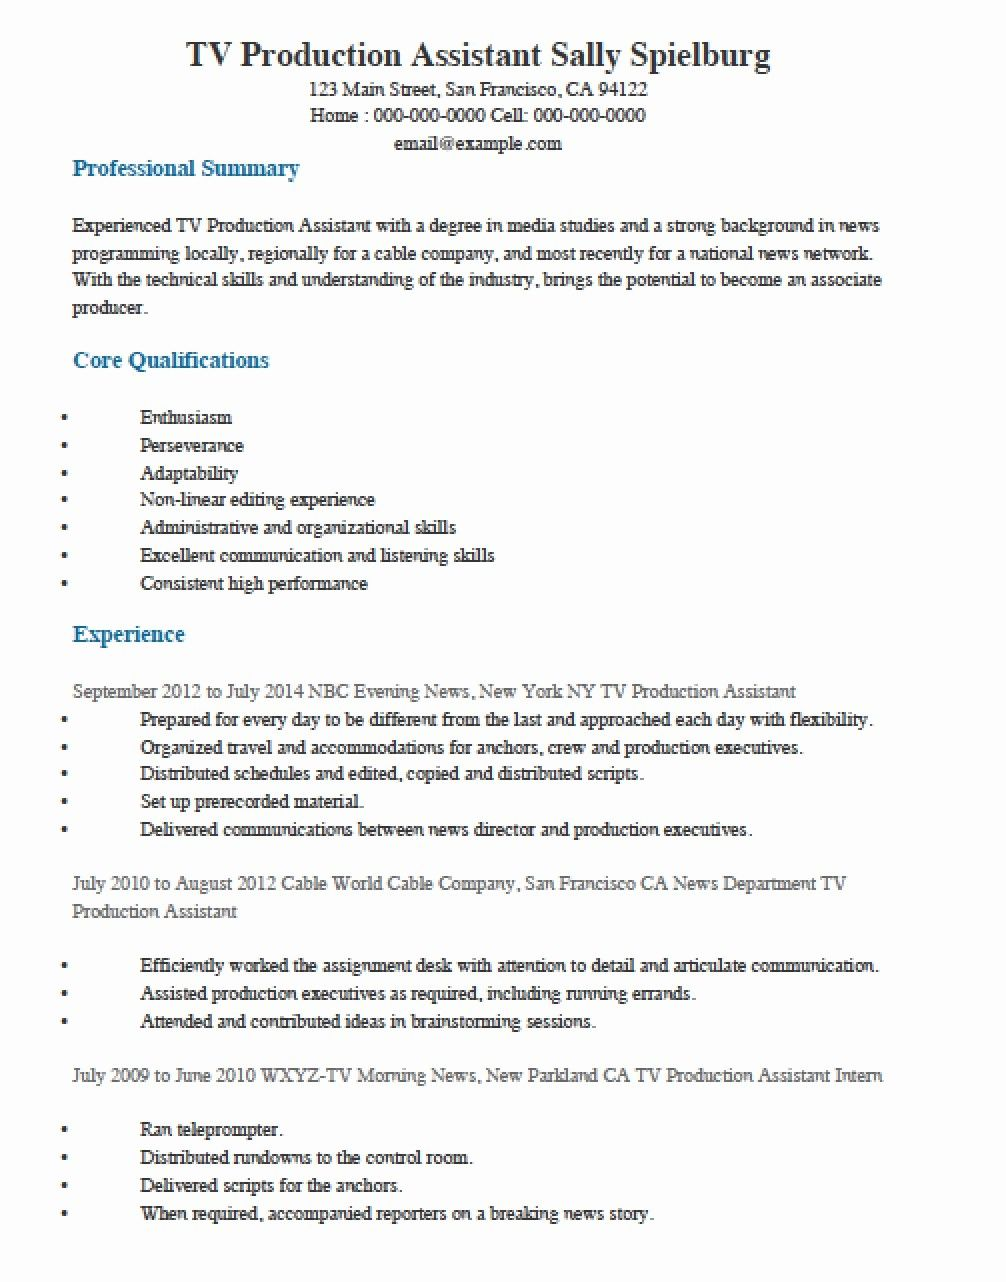 Luxury Free Television Tv Production Assistant Resume Template Resume Examples Resume Guide Job Description Template